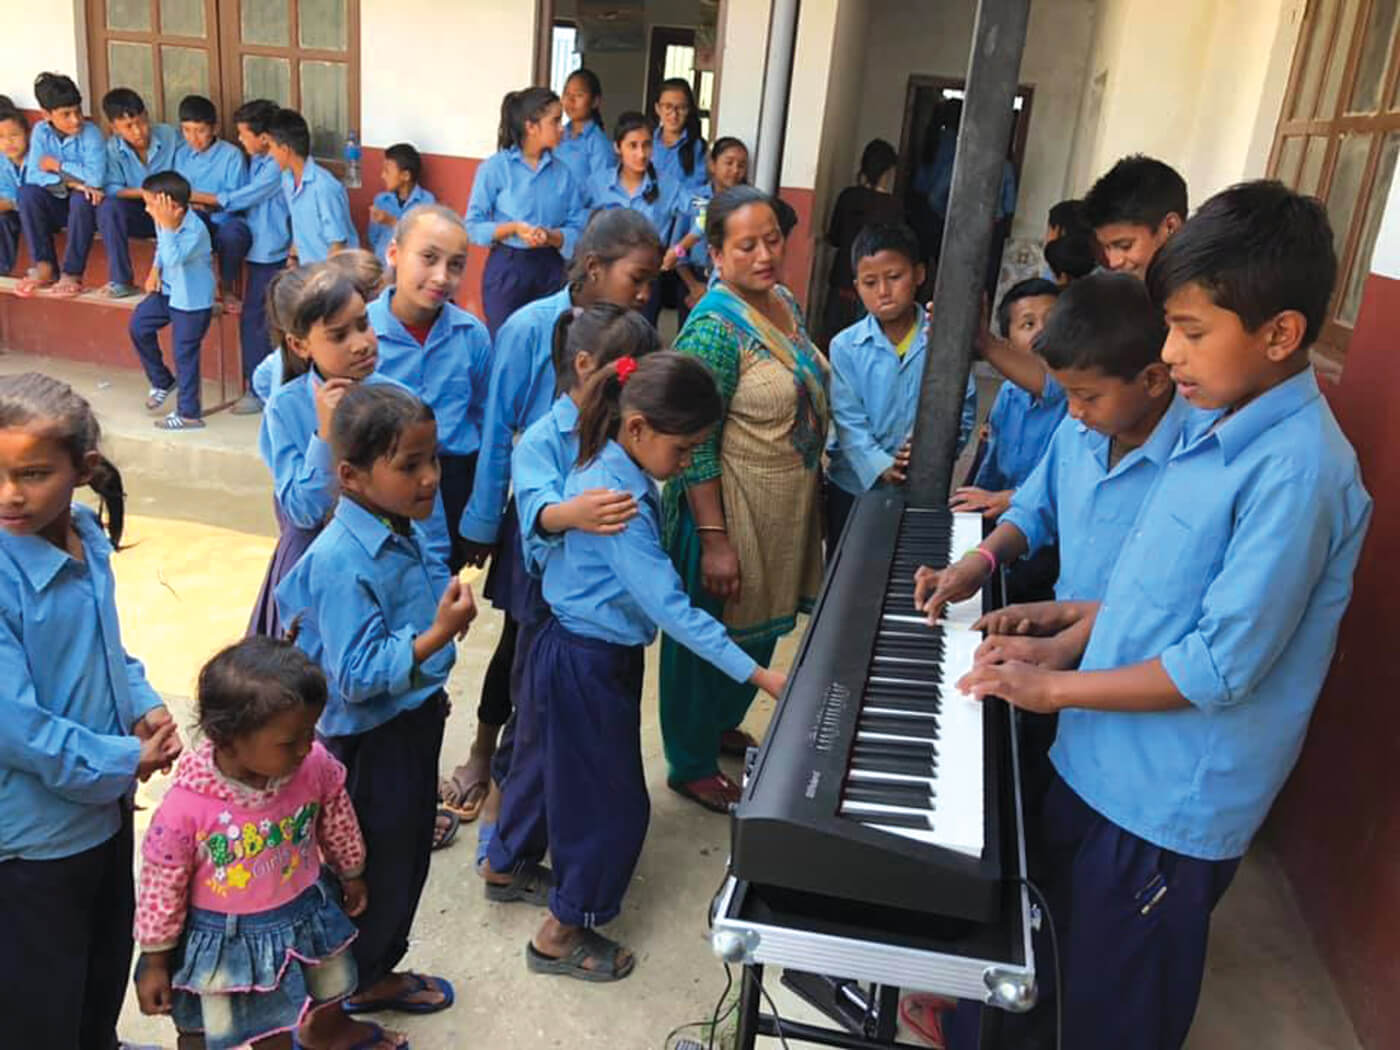 A gift of music to Nepali children